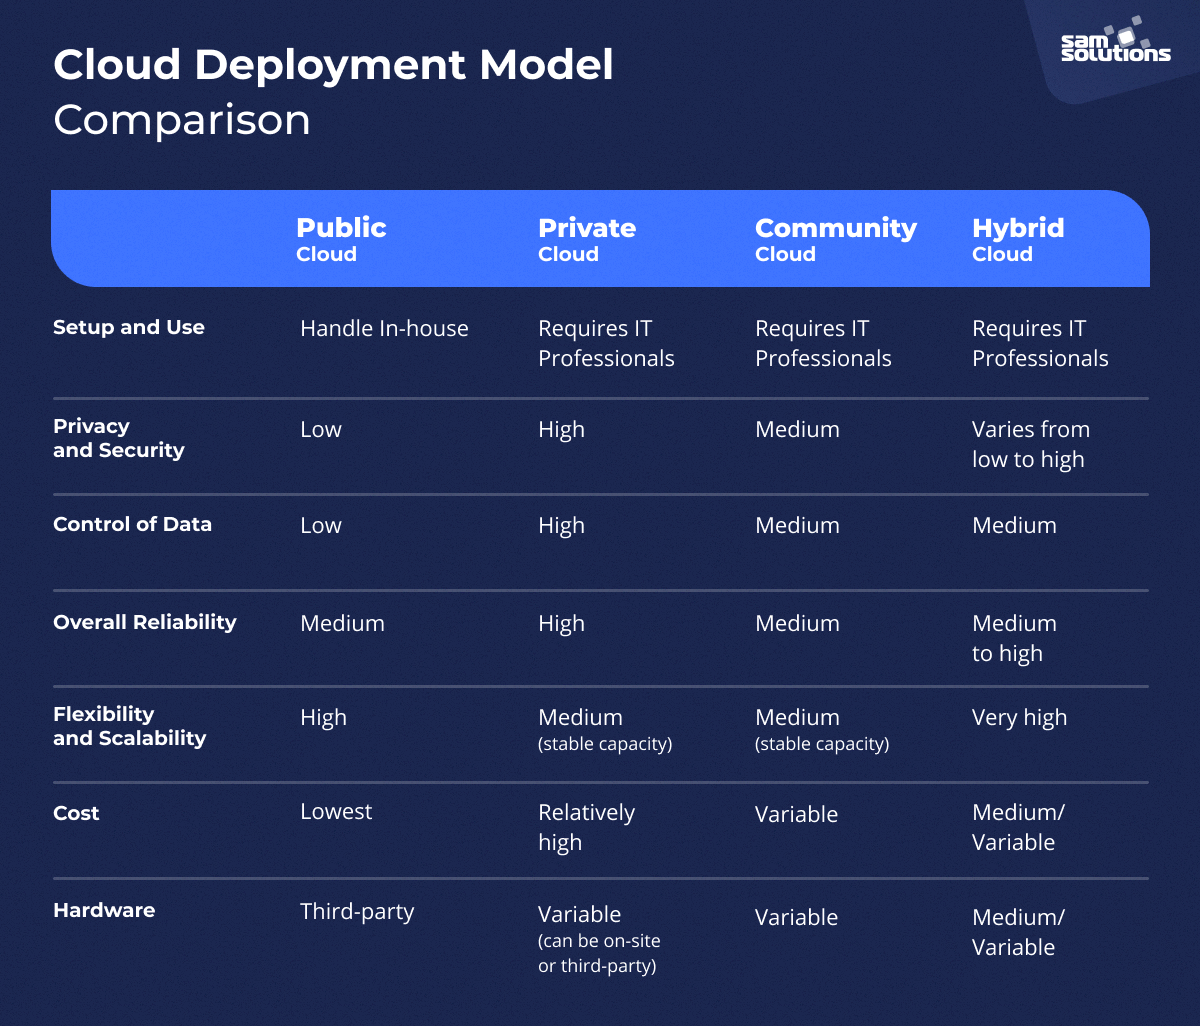 advantages and disadvantages of cloud deployment models comparison table